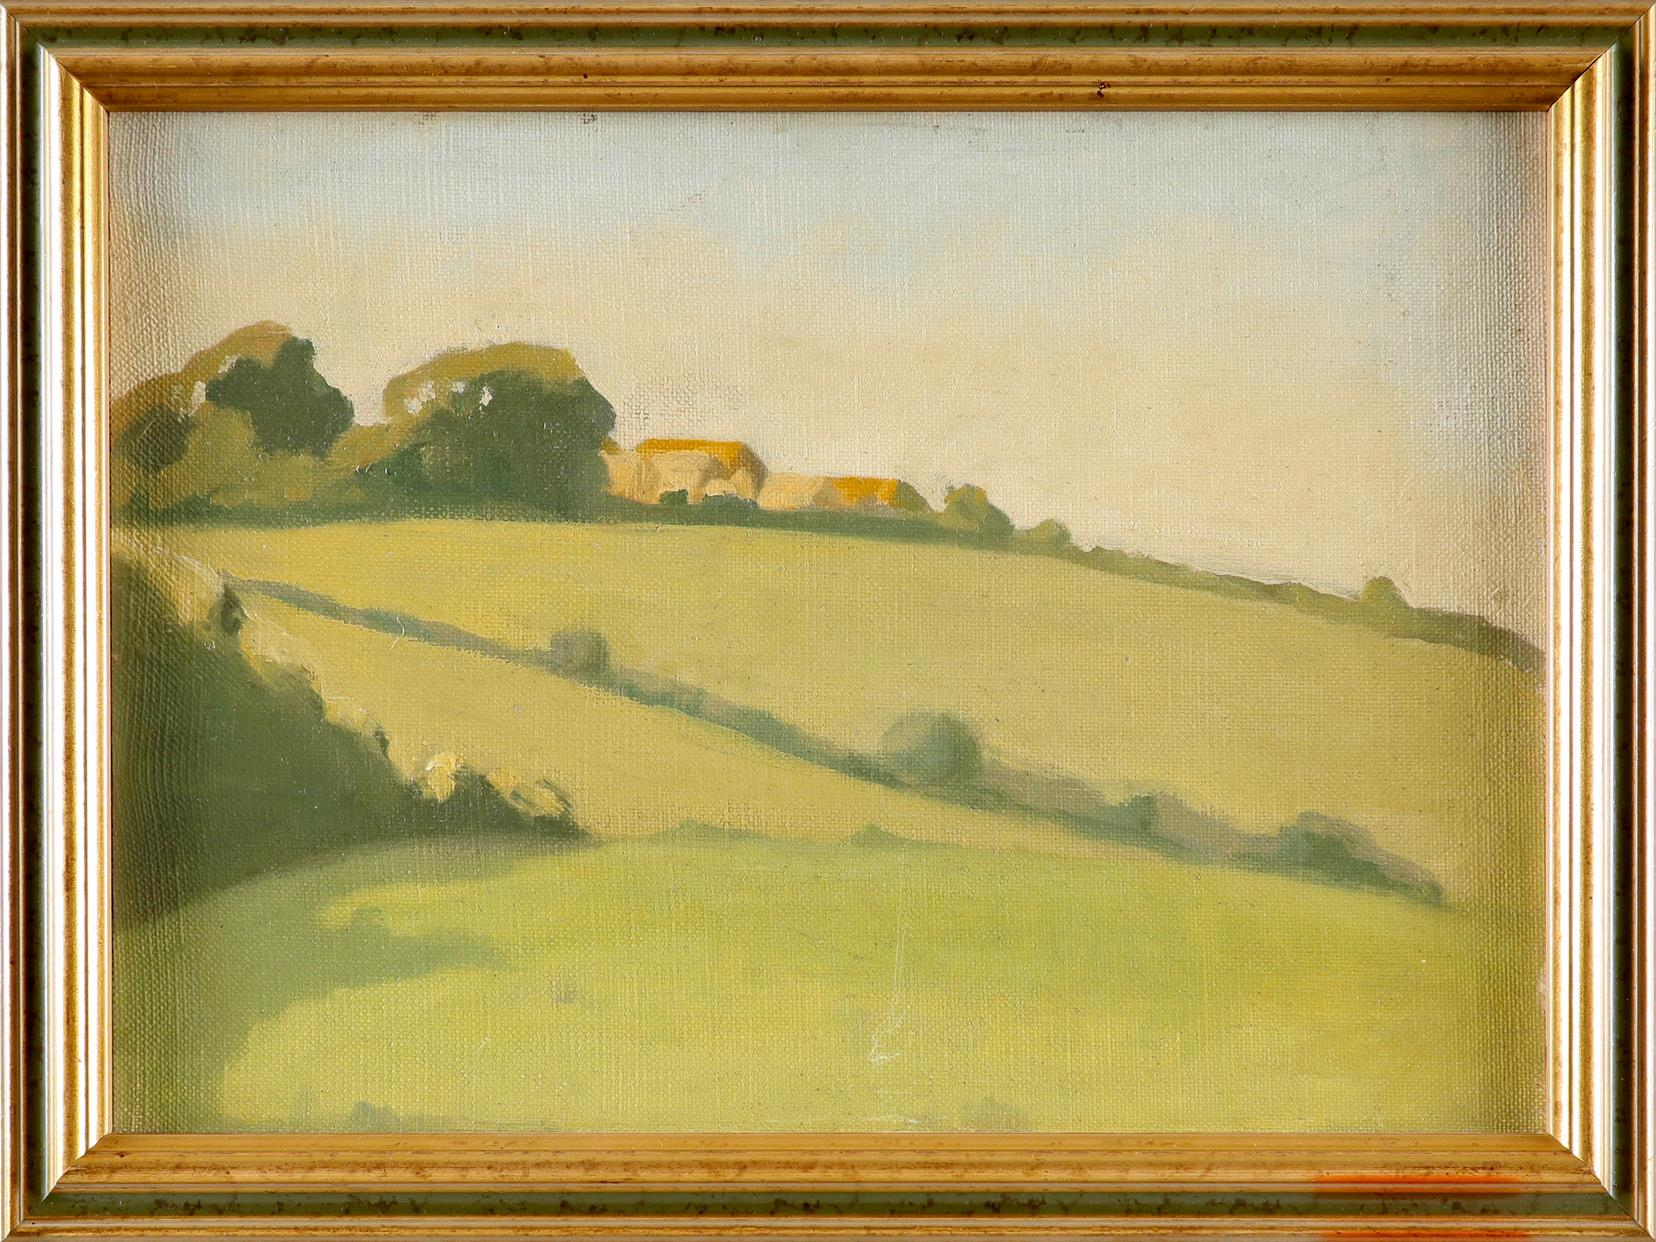 ‡James Durden (1878-1964) Evening sunlight Oil on canvasboard 24.2 x 34.2cm Provenance: The - Image 2 of 3